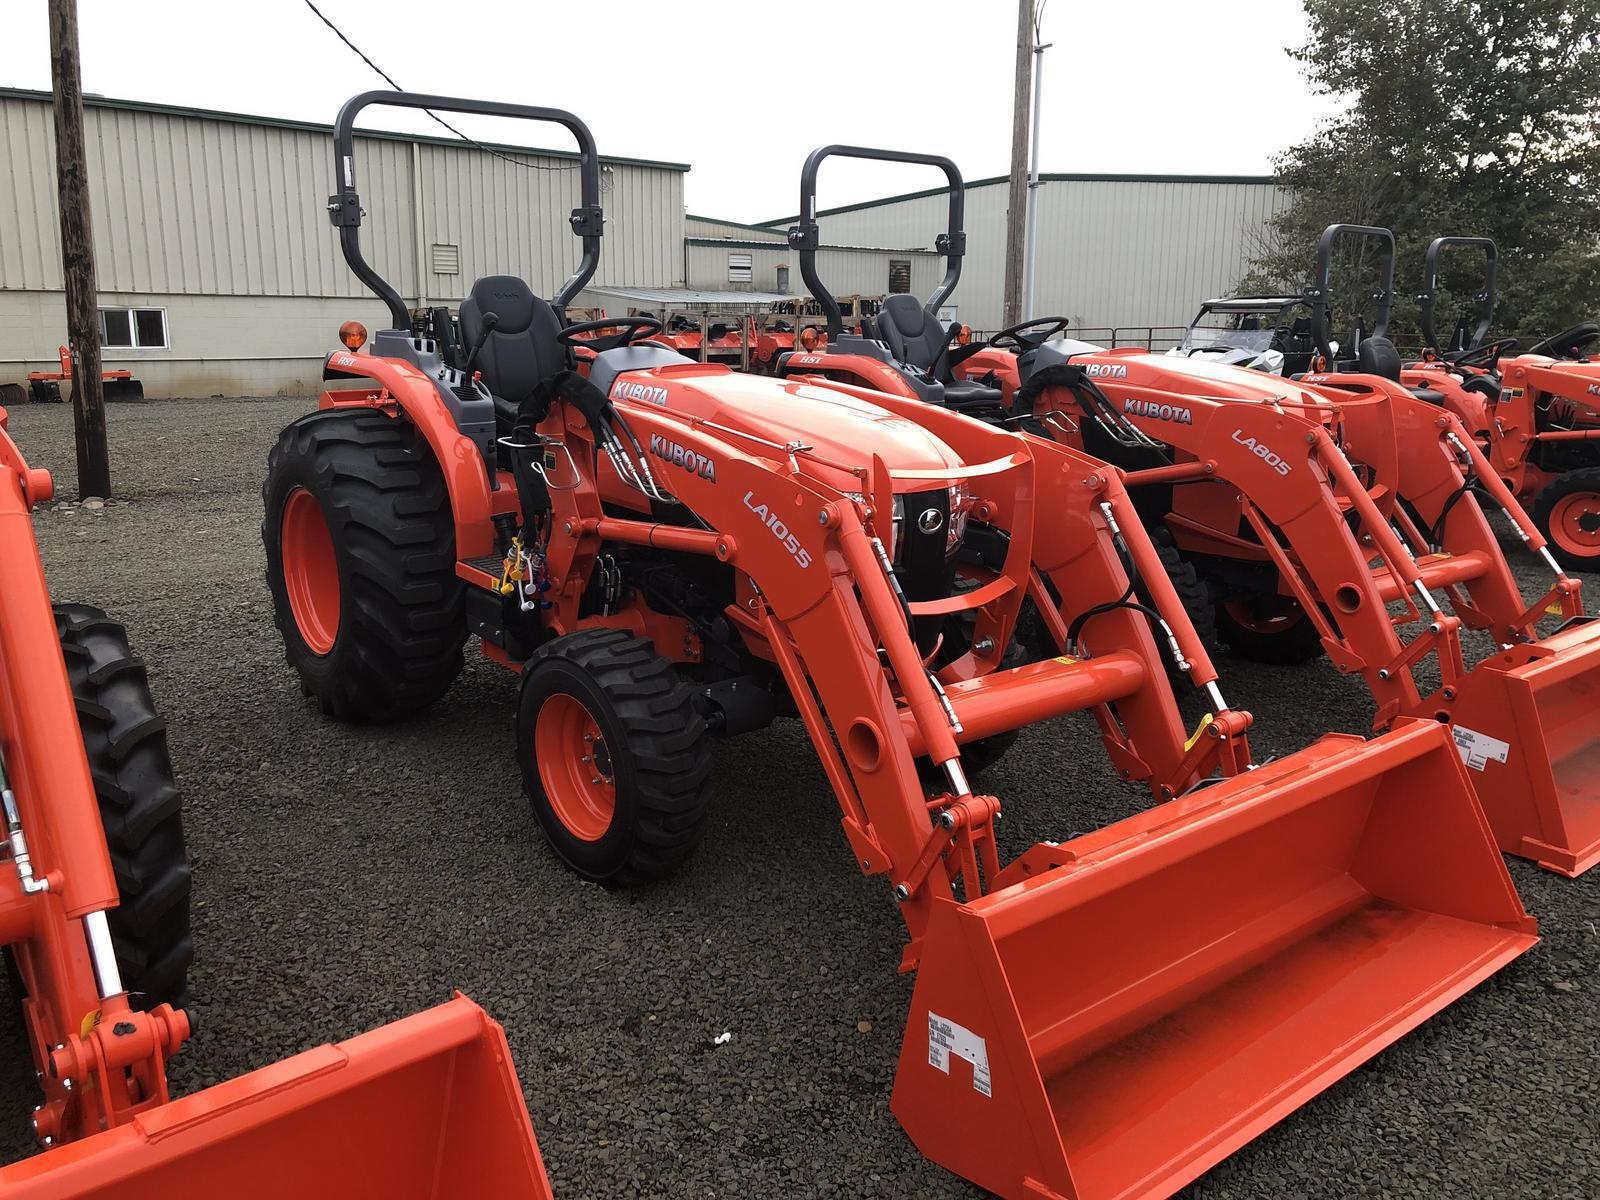 Inventory from Kubota Mid-Valley Tractor Company Eugene, OR